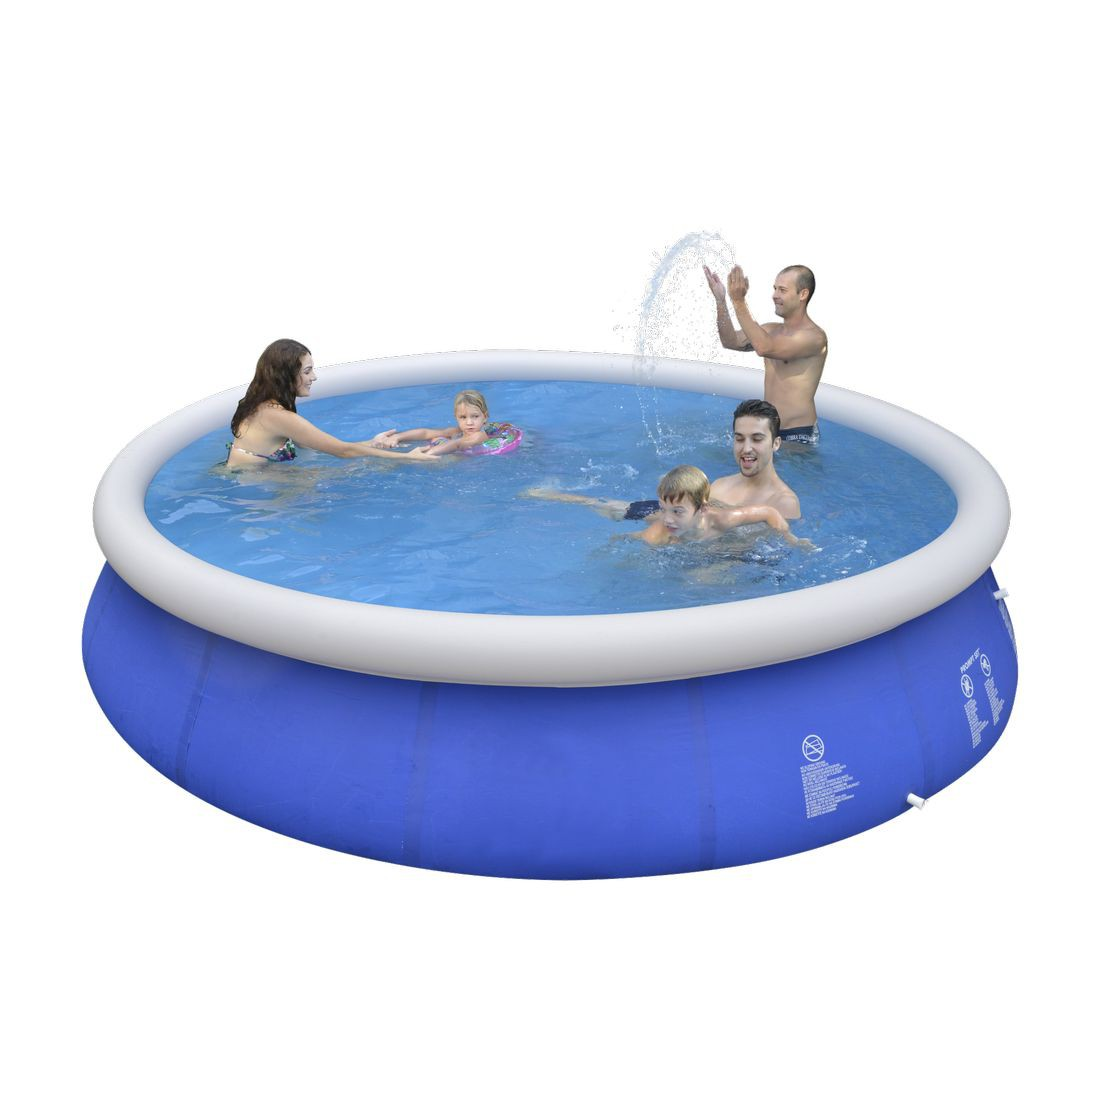 Jilong marin blue 450 quick up pool 450x90cm watersport for Quick up pool obi